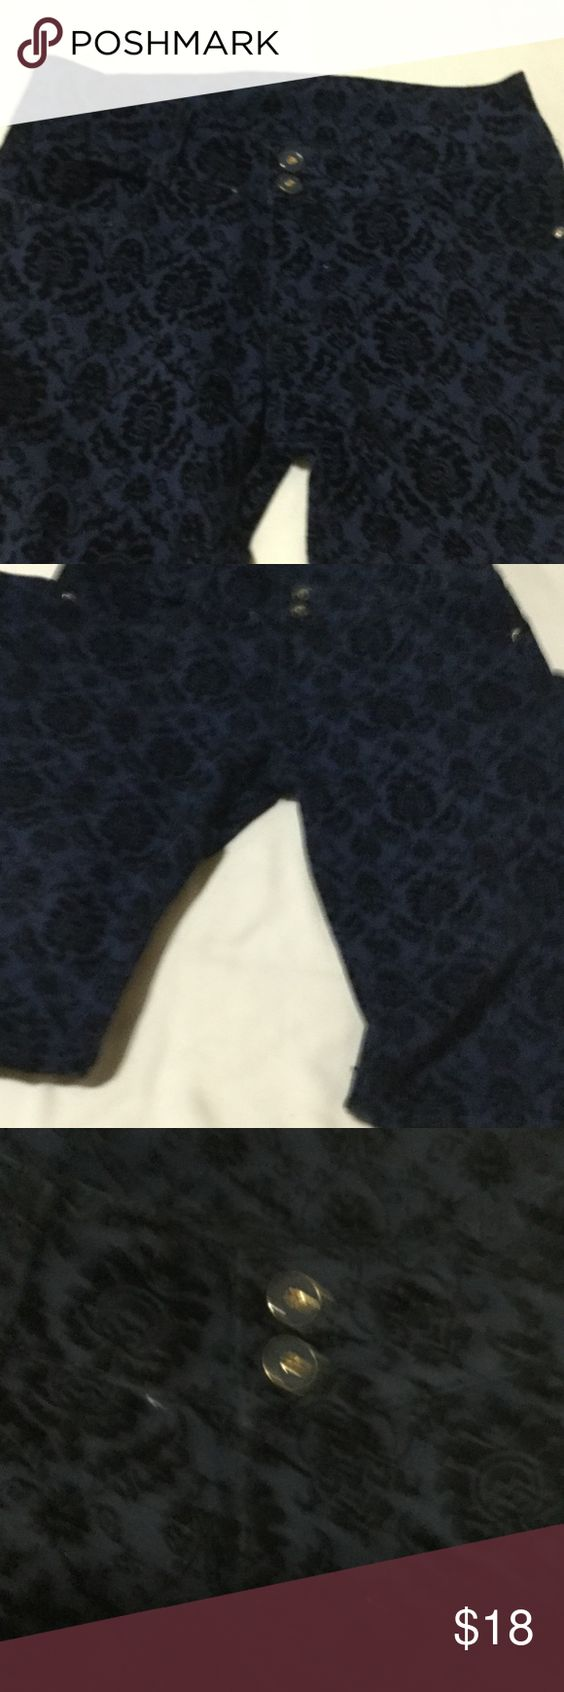 Velvet flowered jeans Special addition by Levi's  very rare in USA Made for Europe . Velvet flowers on blue jeans with 5 pockets and beautiful blue buttons . You can only buy this till 27 October because my shipping time is limited and all offers of 50% on already reduced price is honored . Thanks Levi's Jeans Skinny